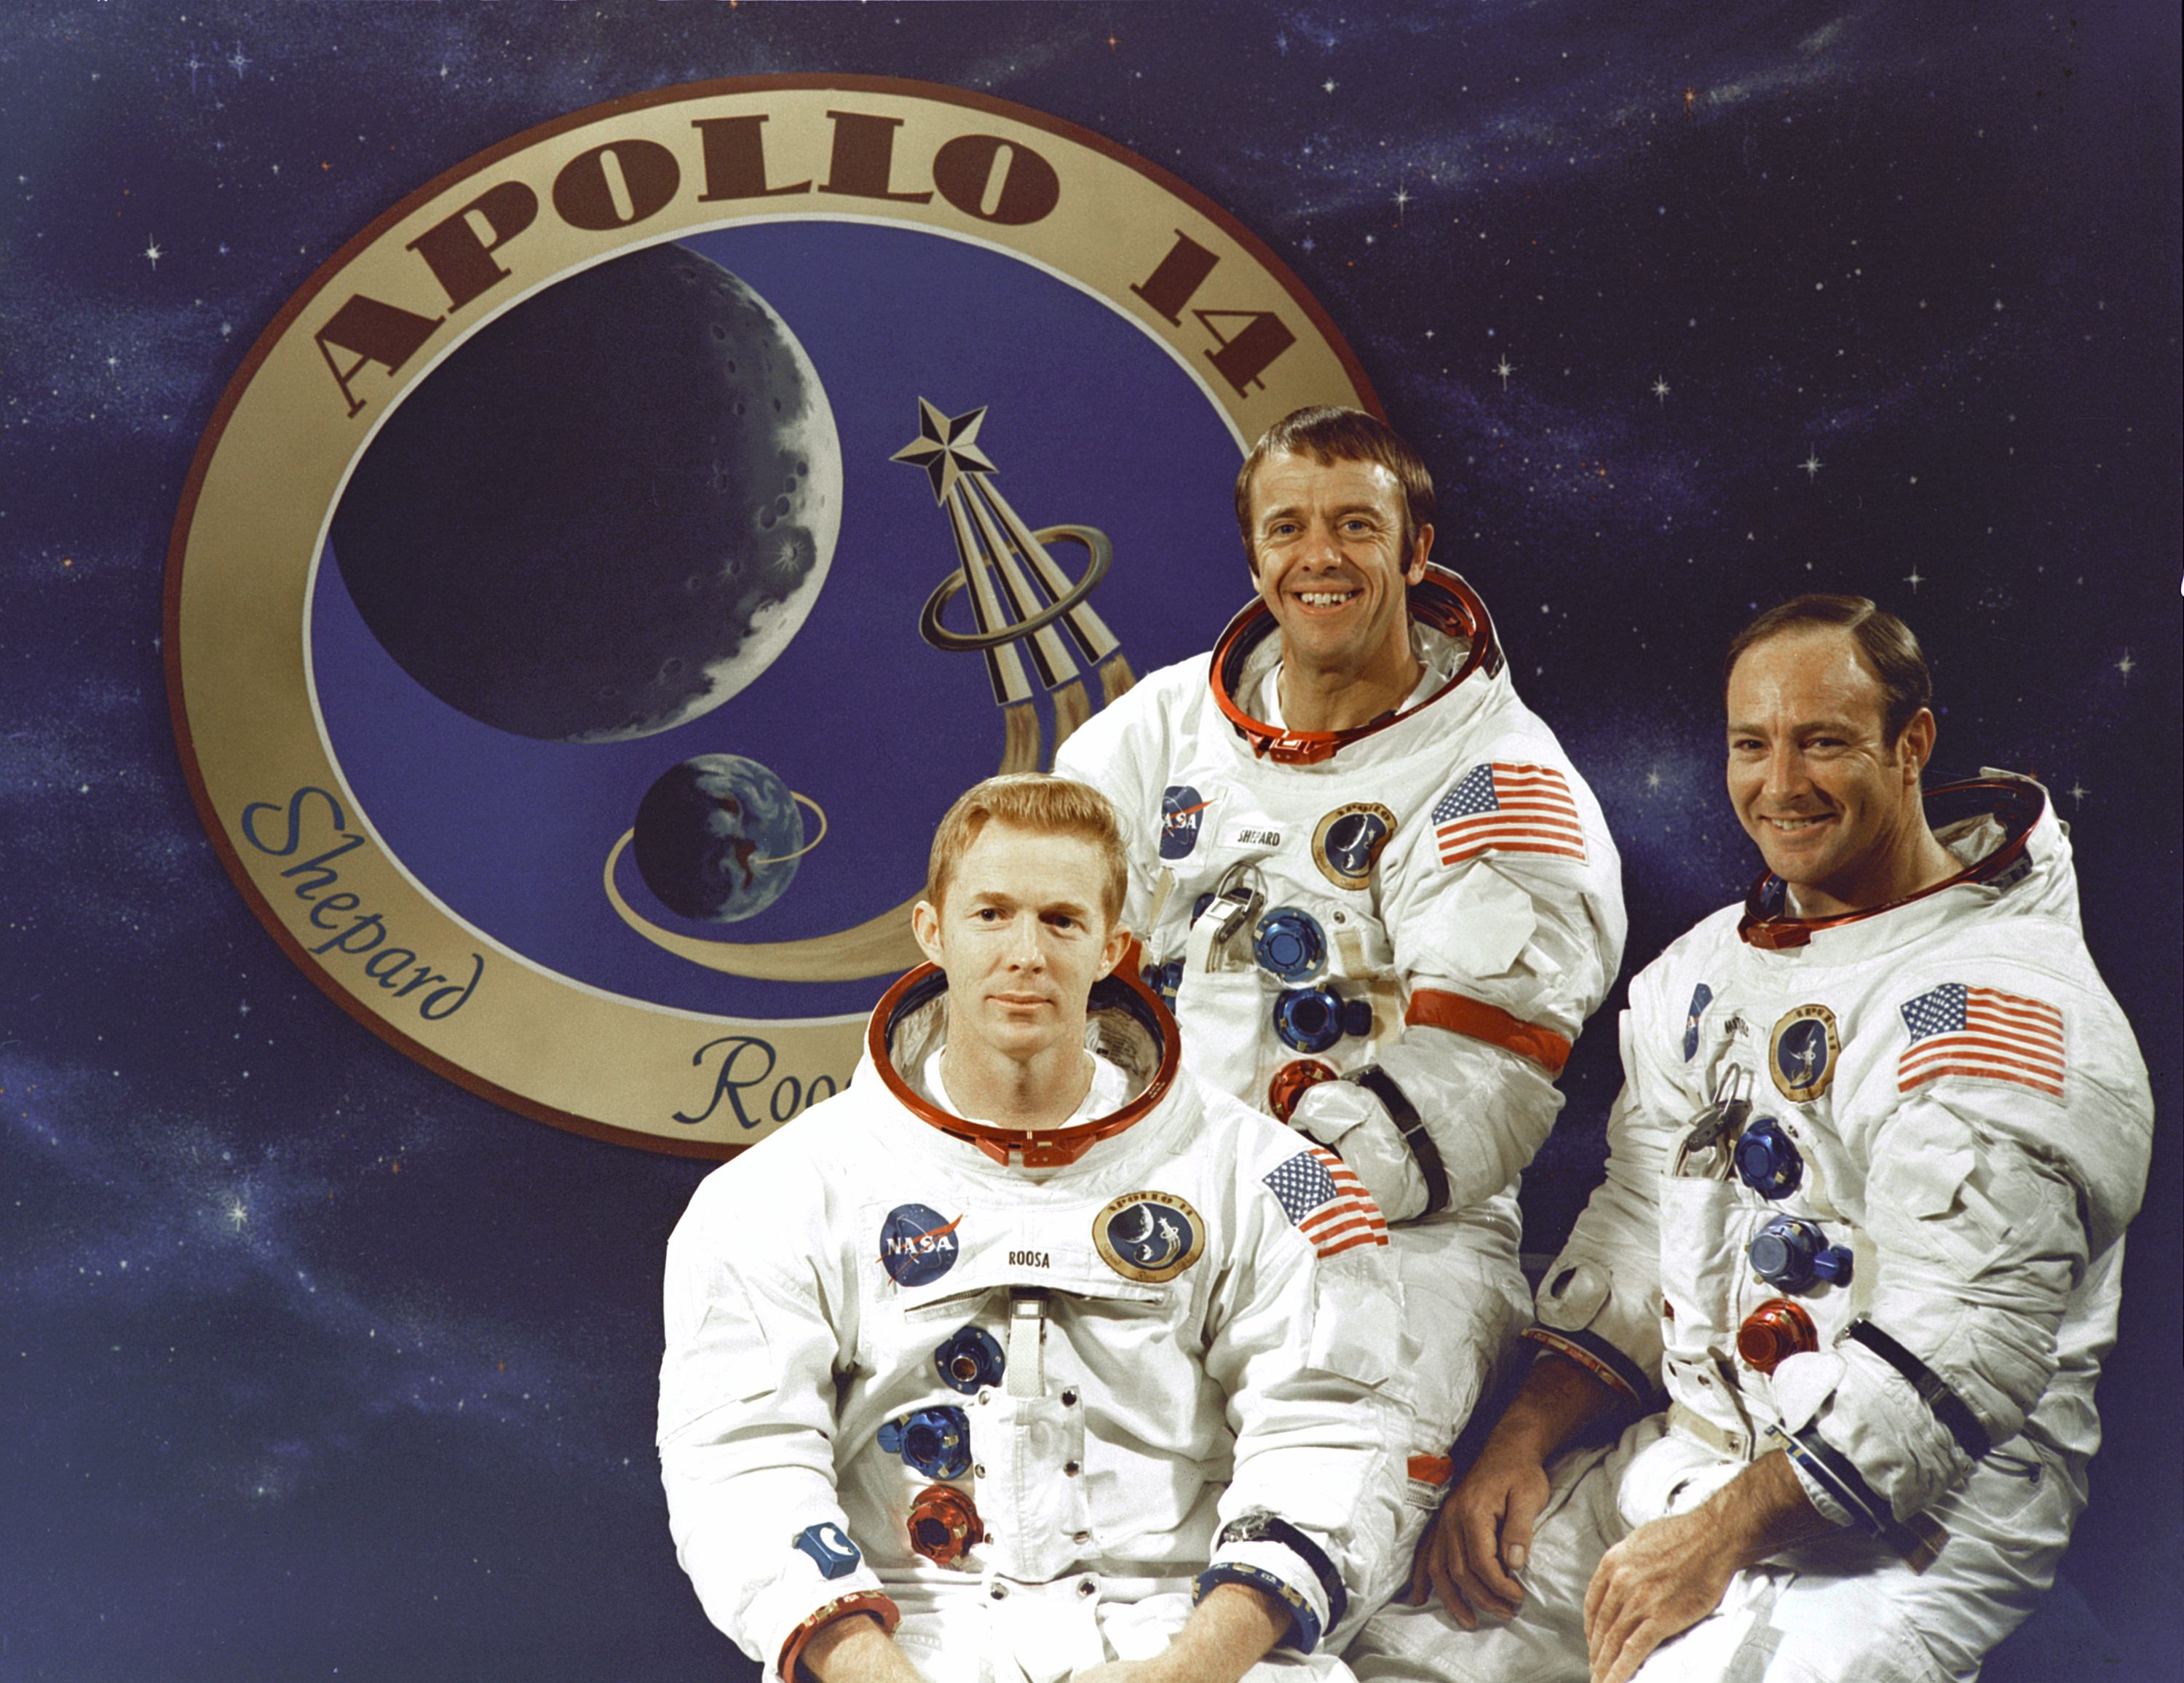 Apollo 14: Facts About the 'Rookie' Crew & the Golf Ball